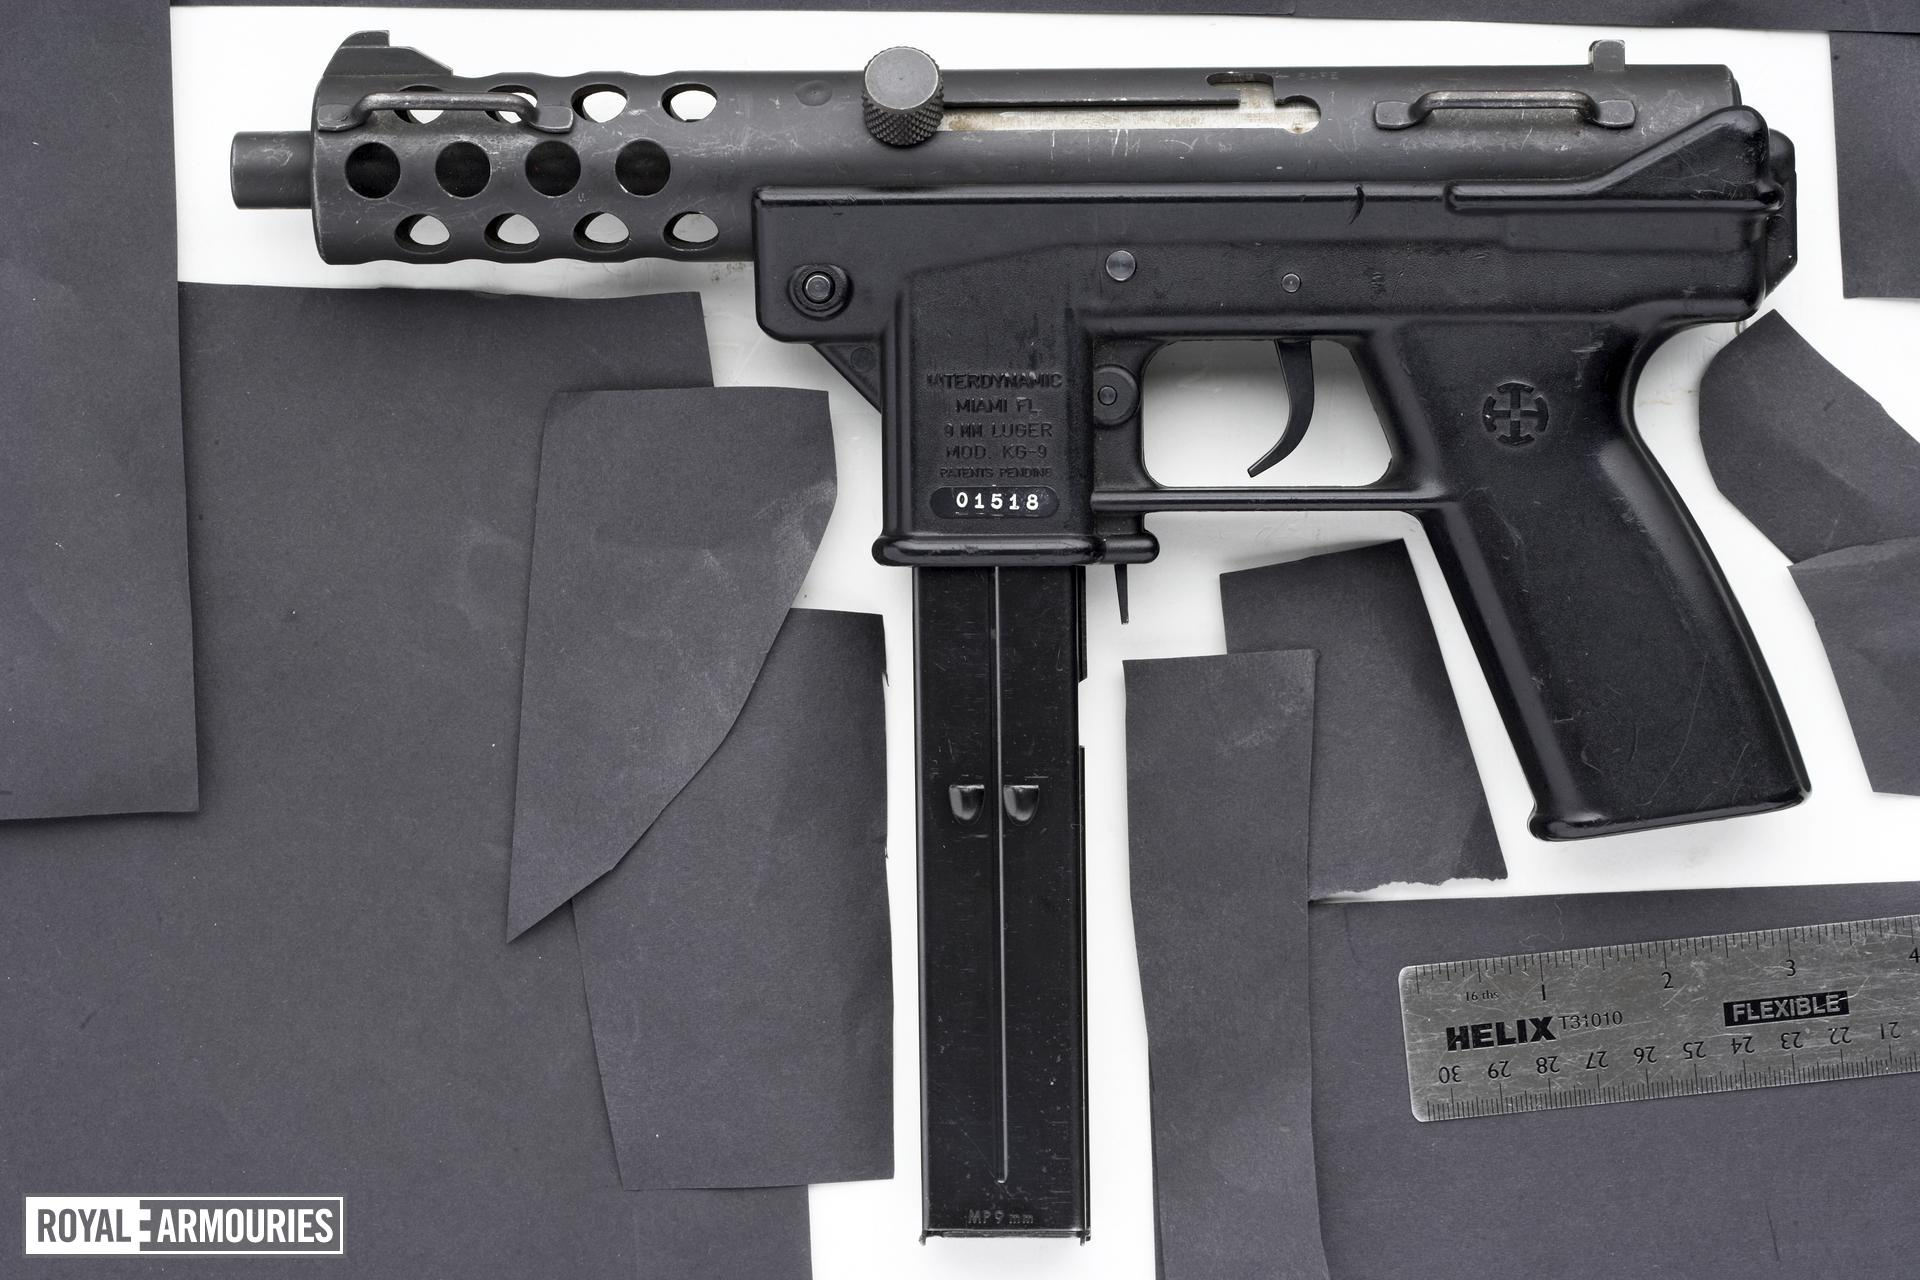 Centrefire self-loading submachine gun - Interdynamic Model KG-9 Semi automatic only variant.